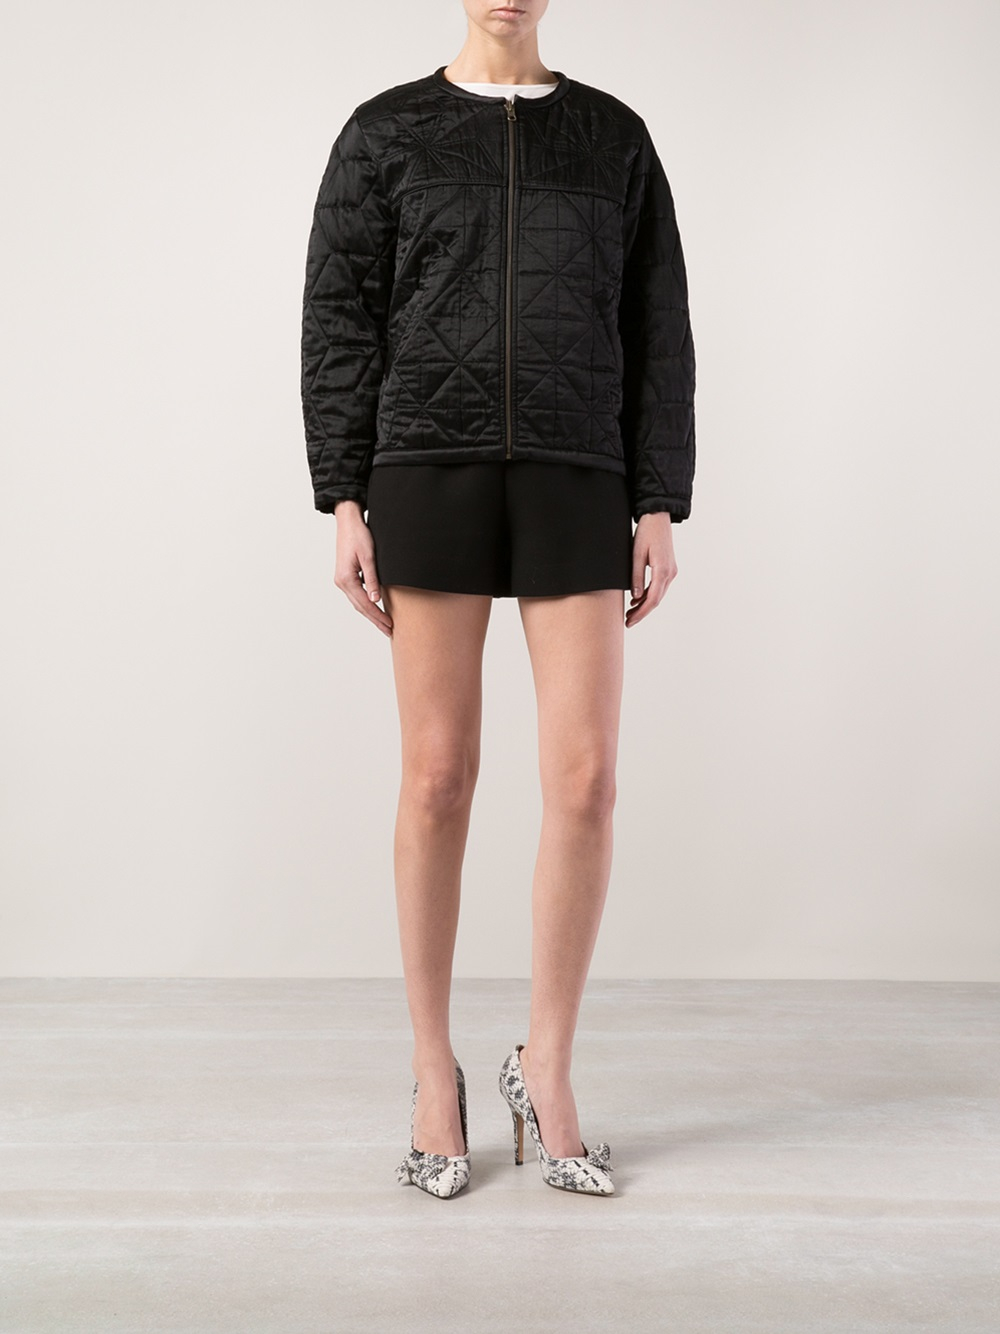 201 Toile Isabel Marant Reversible Jacket In Black Lyst